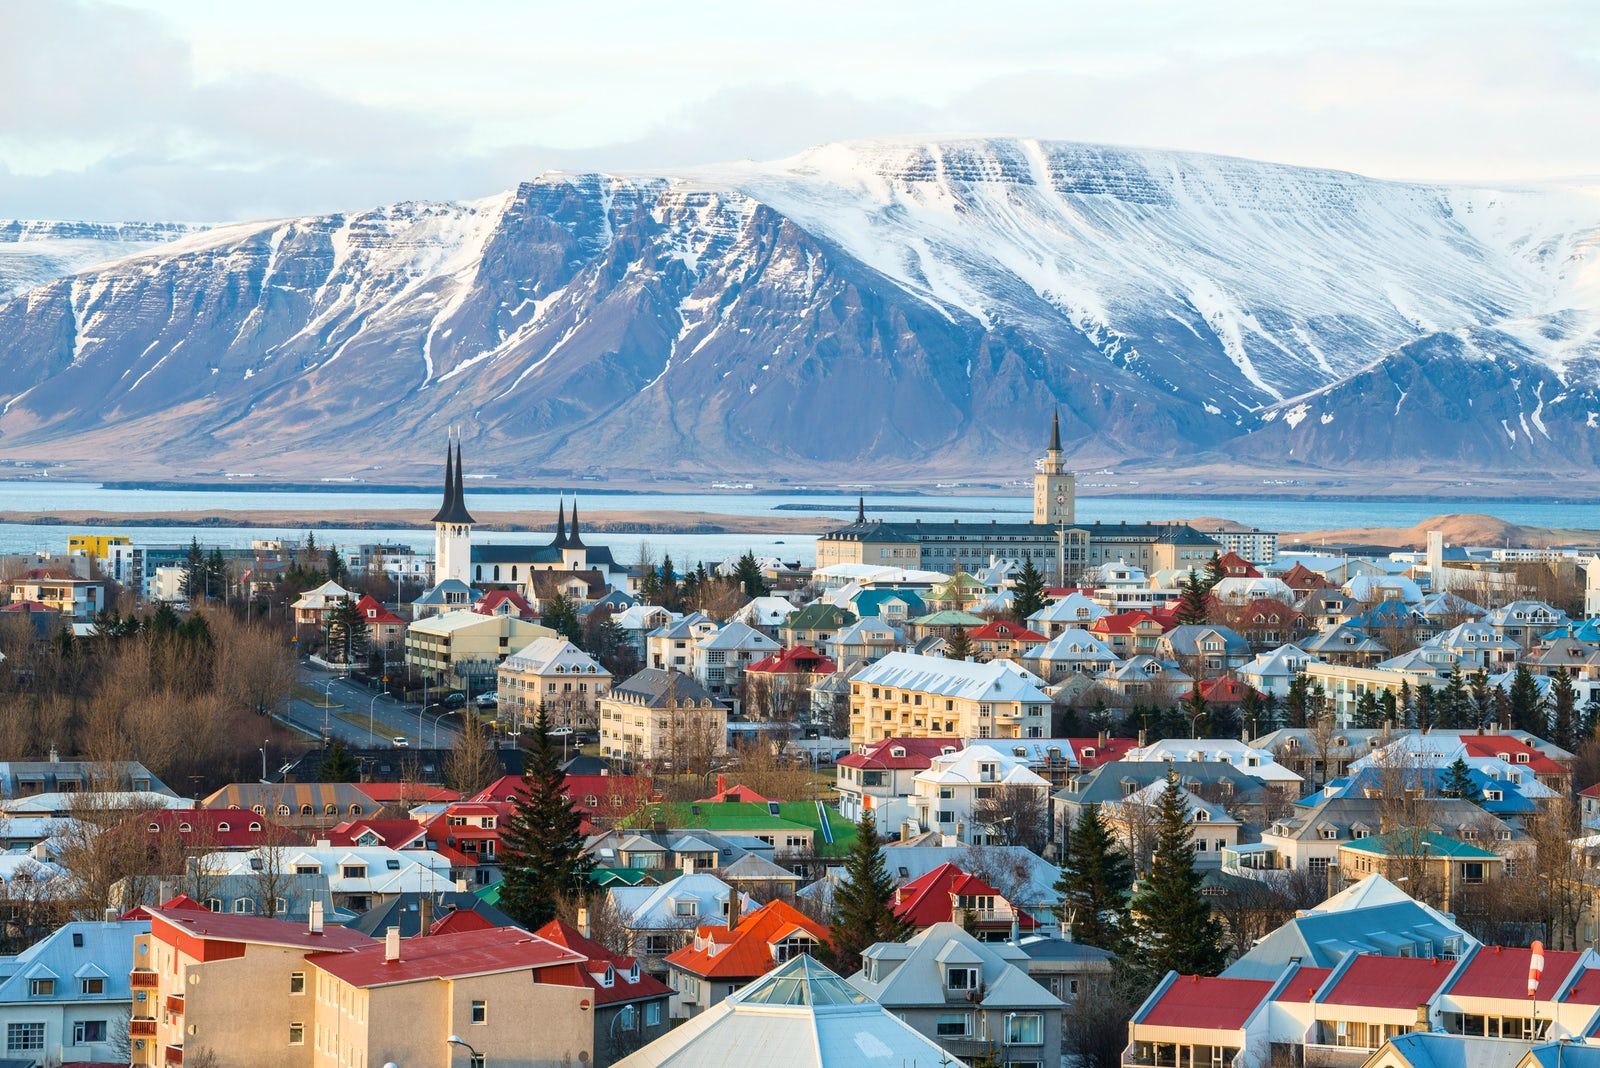 !i18n:fr:data.cities:reykjavik.picture.caption